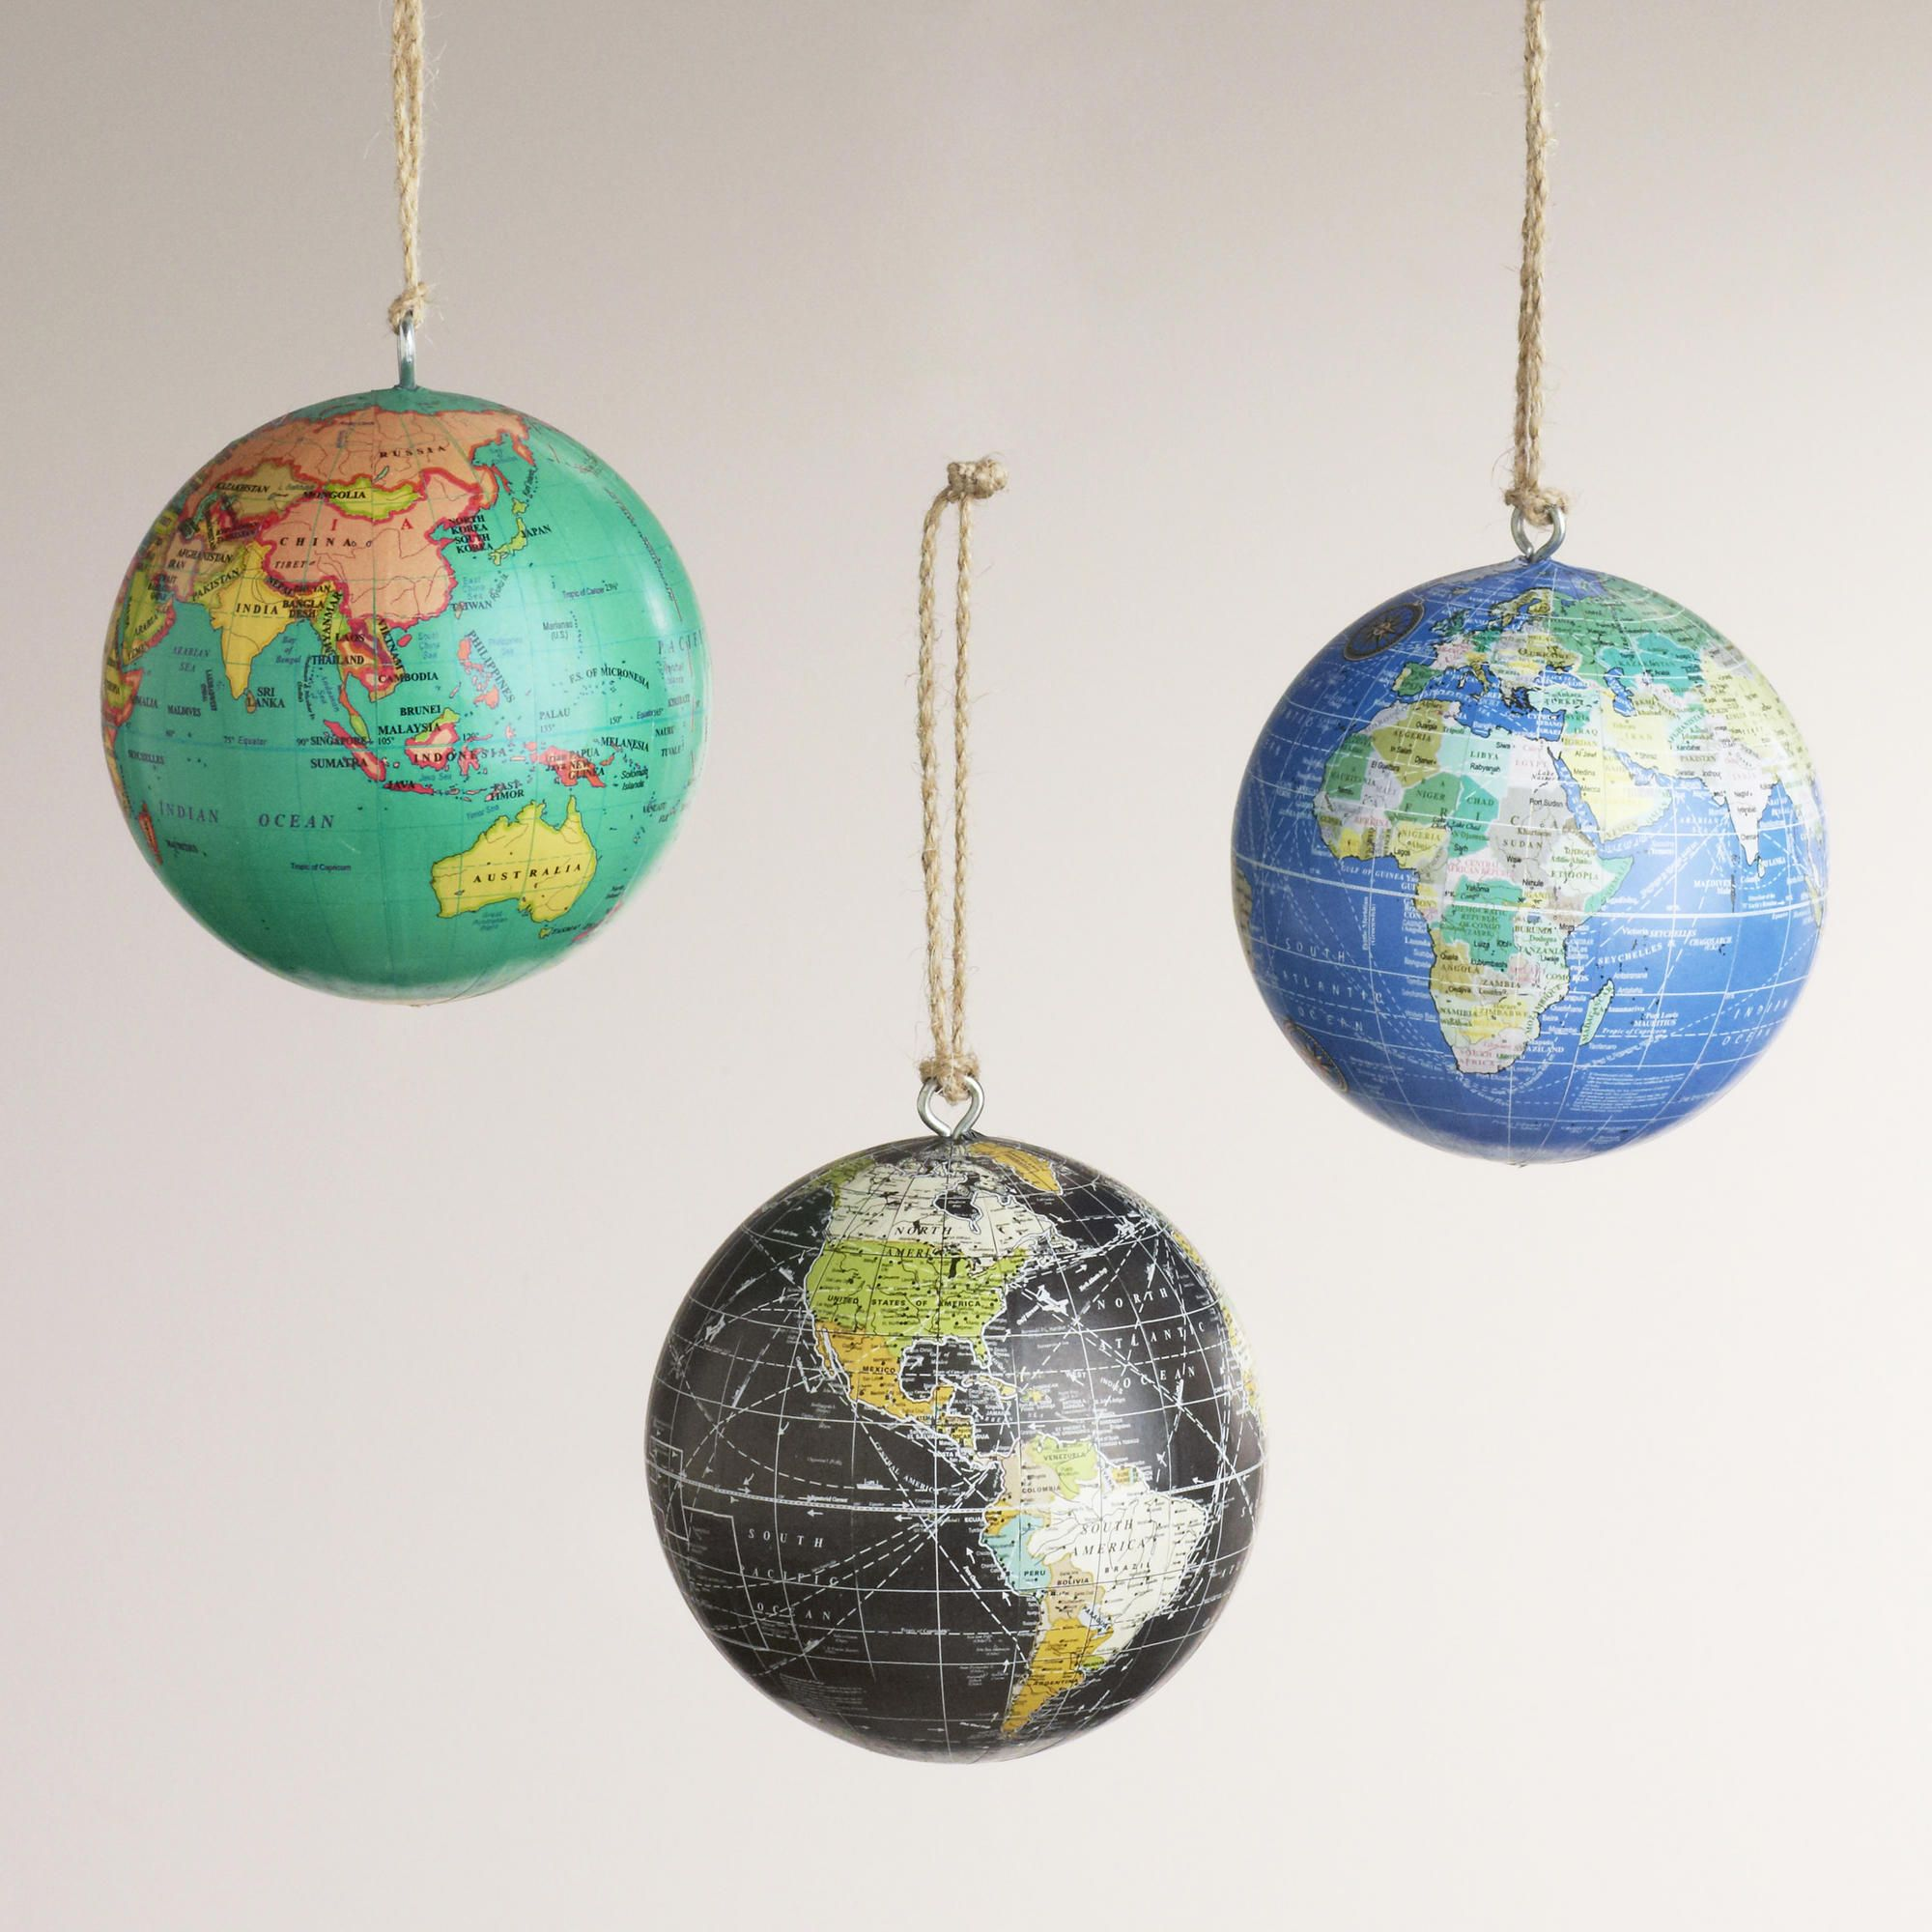 Gallery of world globe christmas ornaments